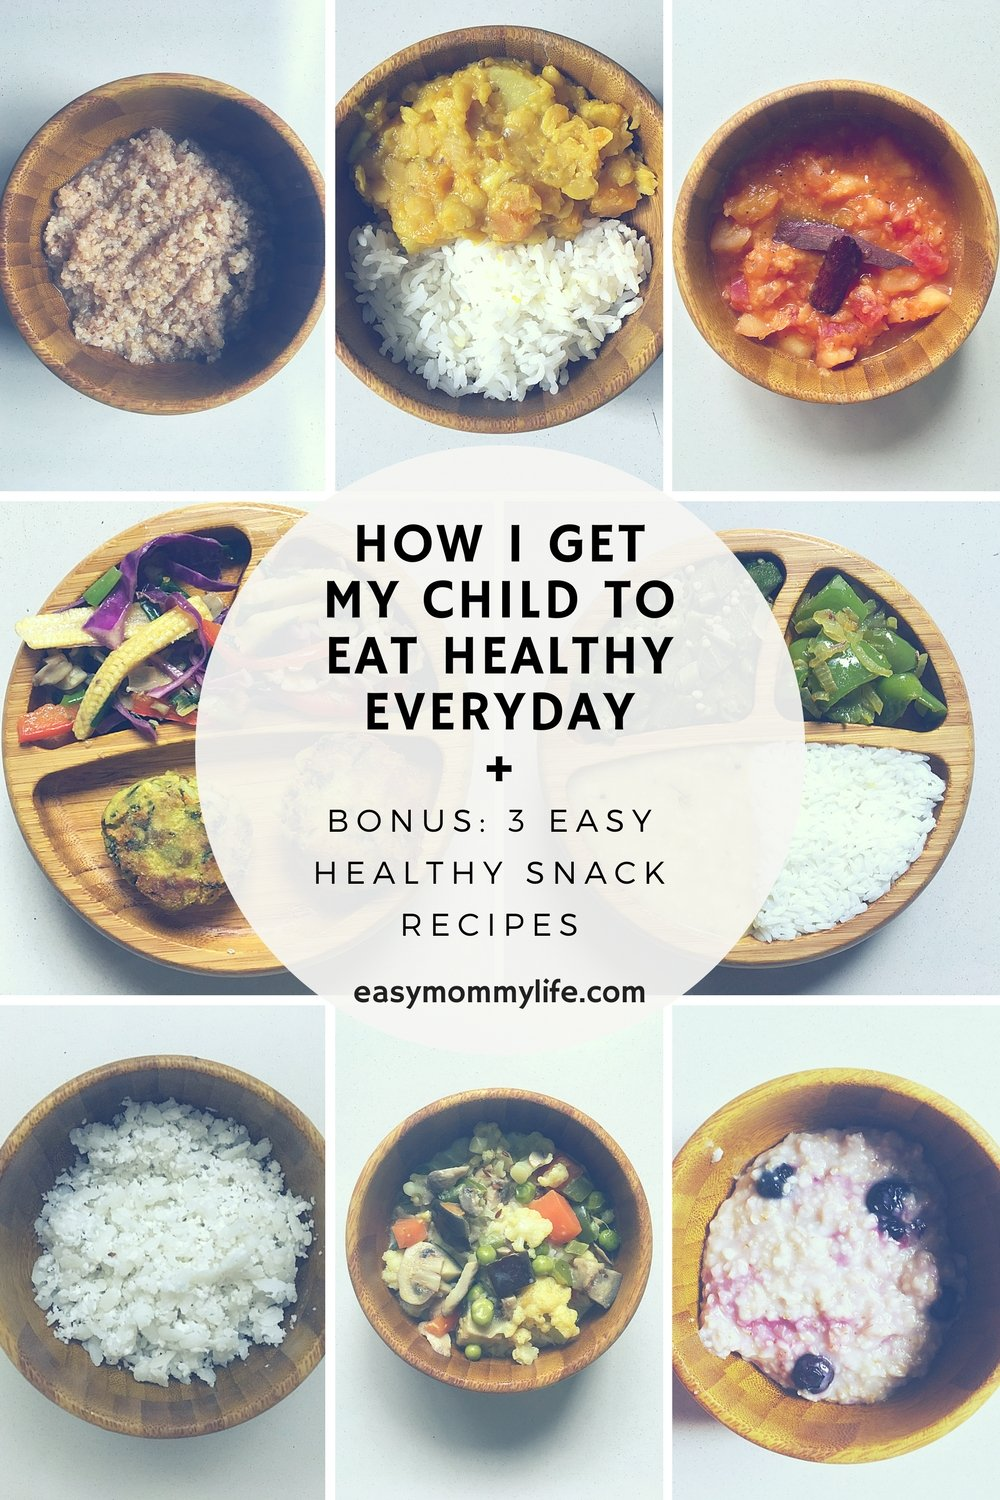 How I Get My Child To Eat Healthy Everyday